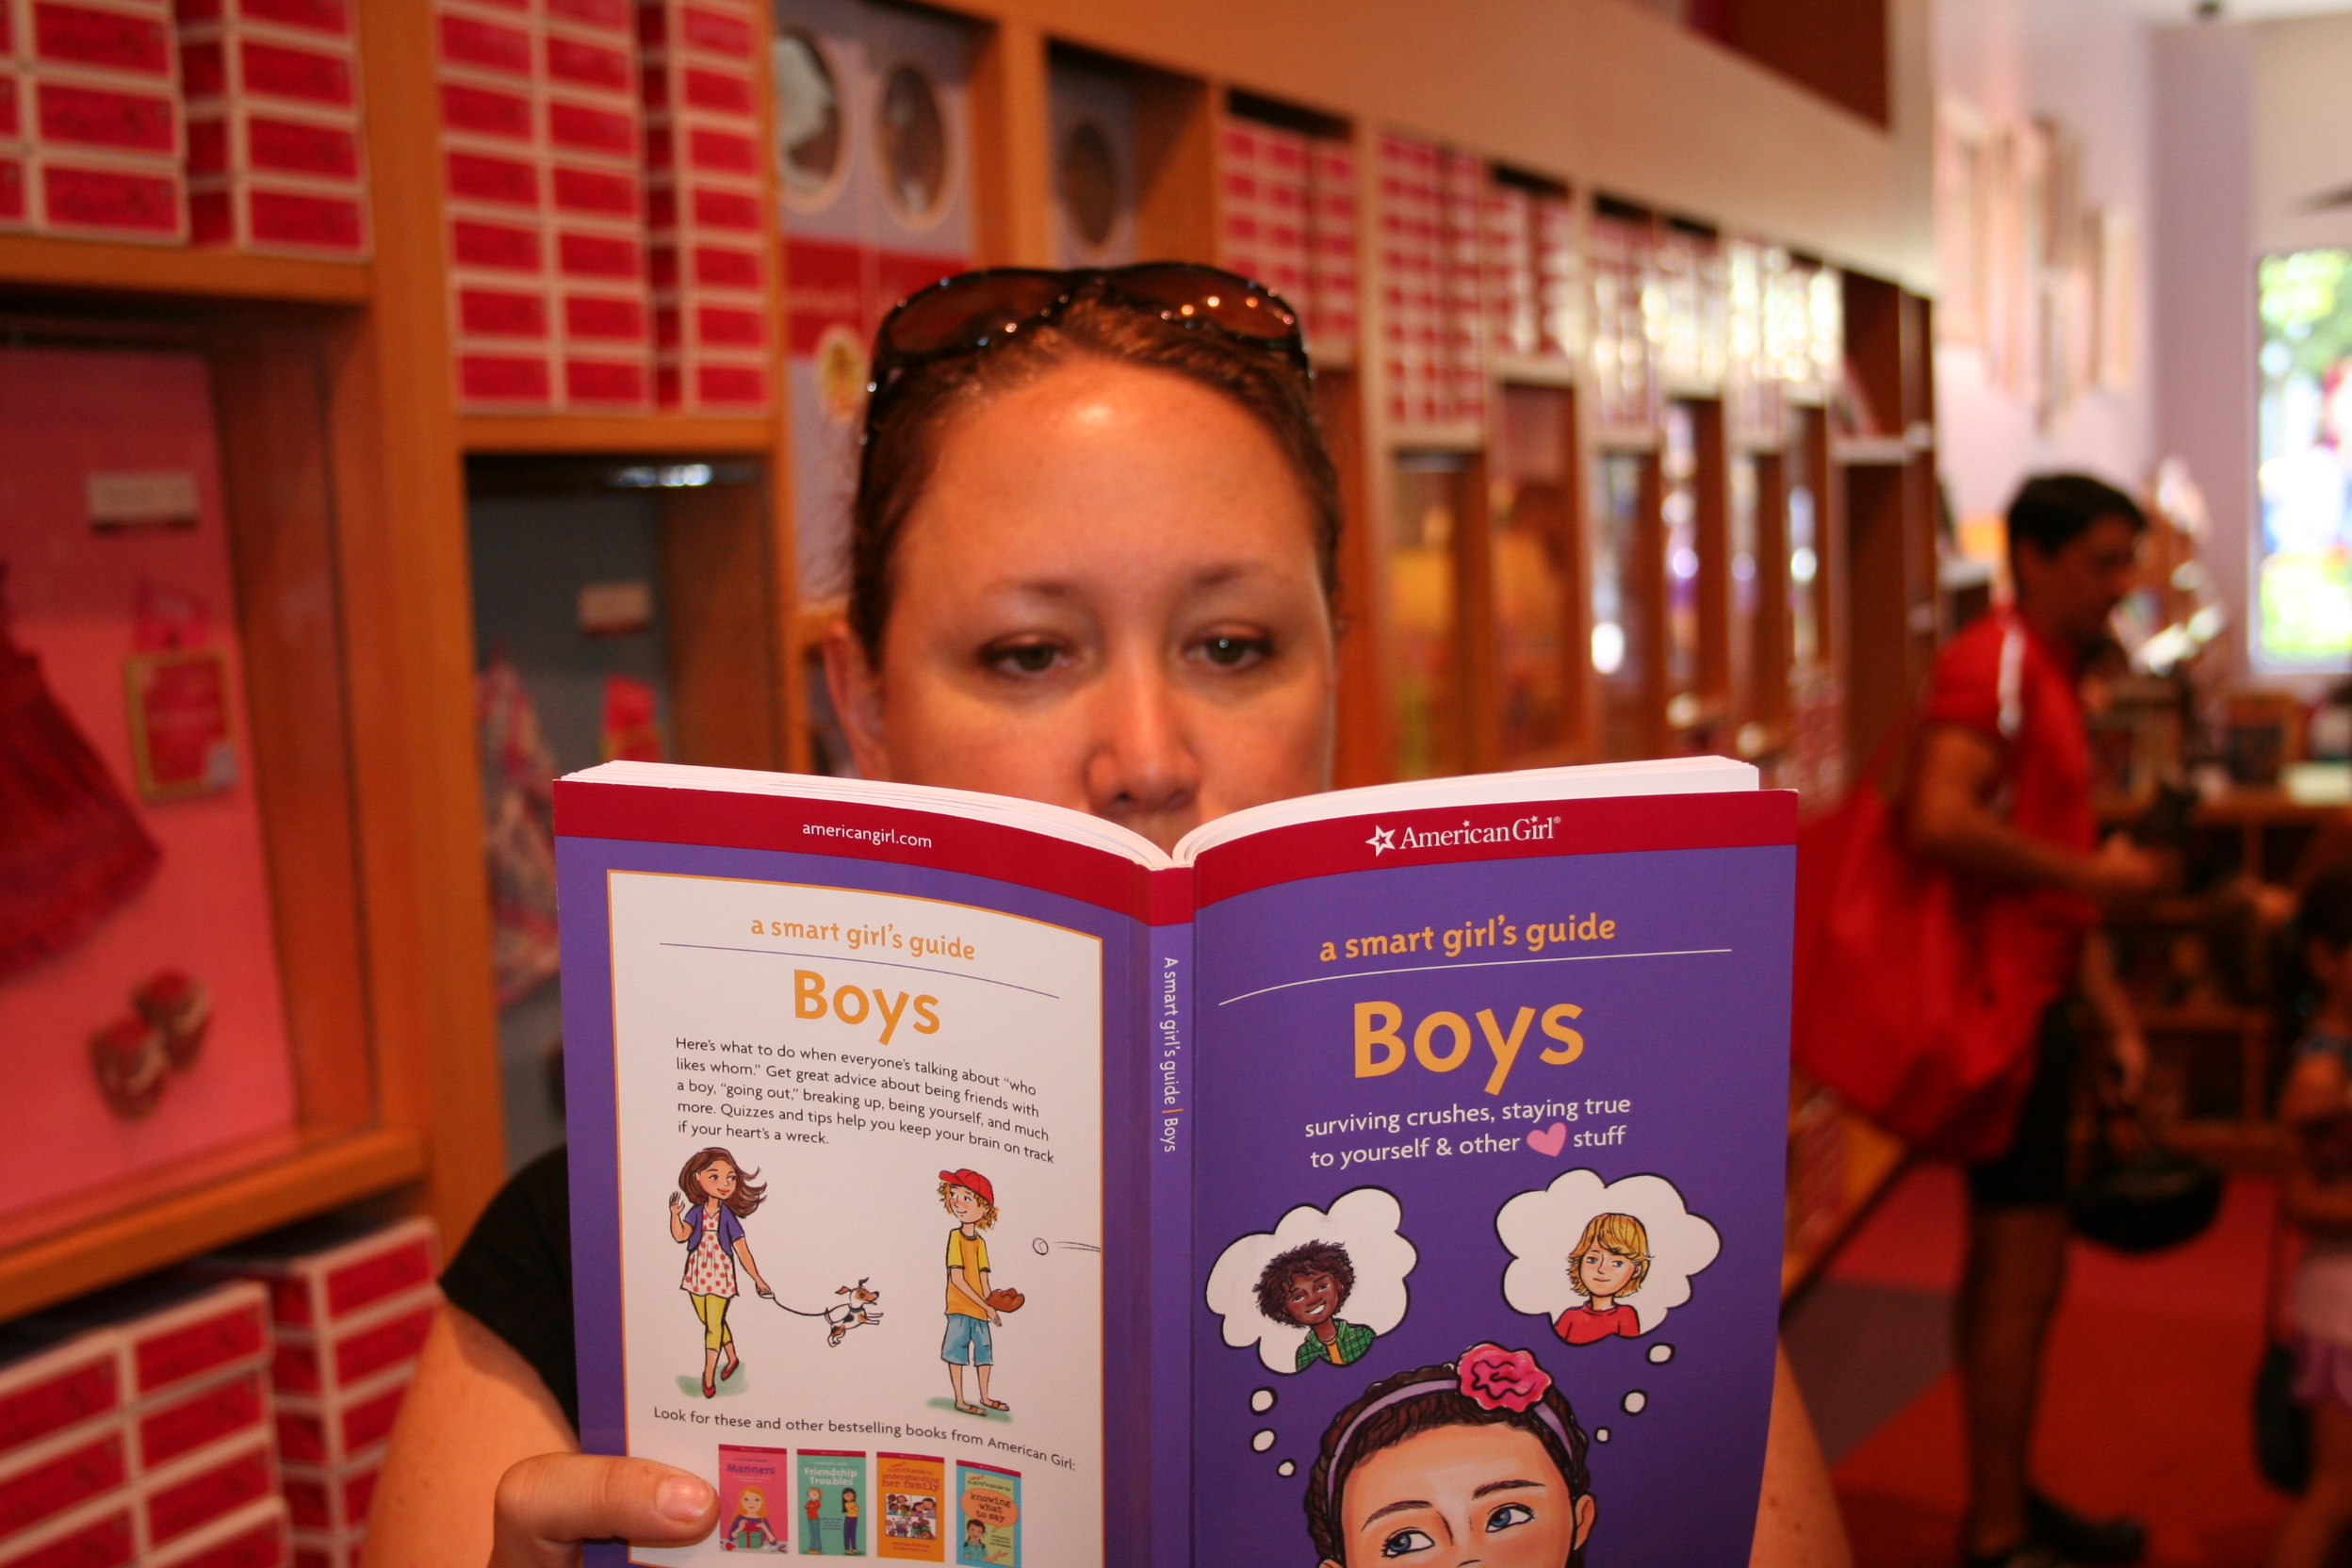 Caught reading at the American Girl store.